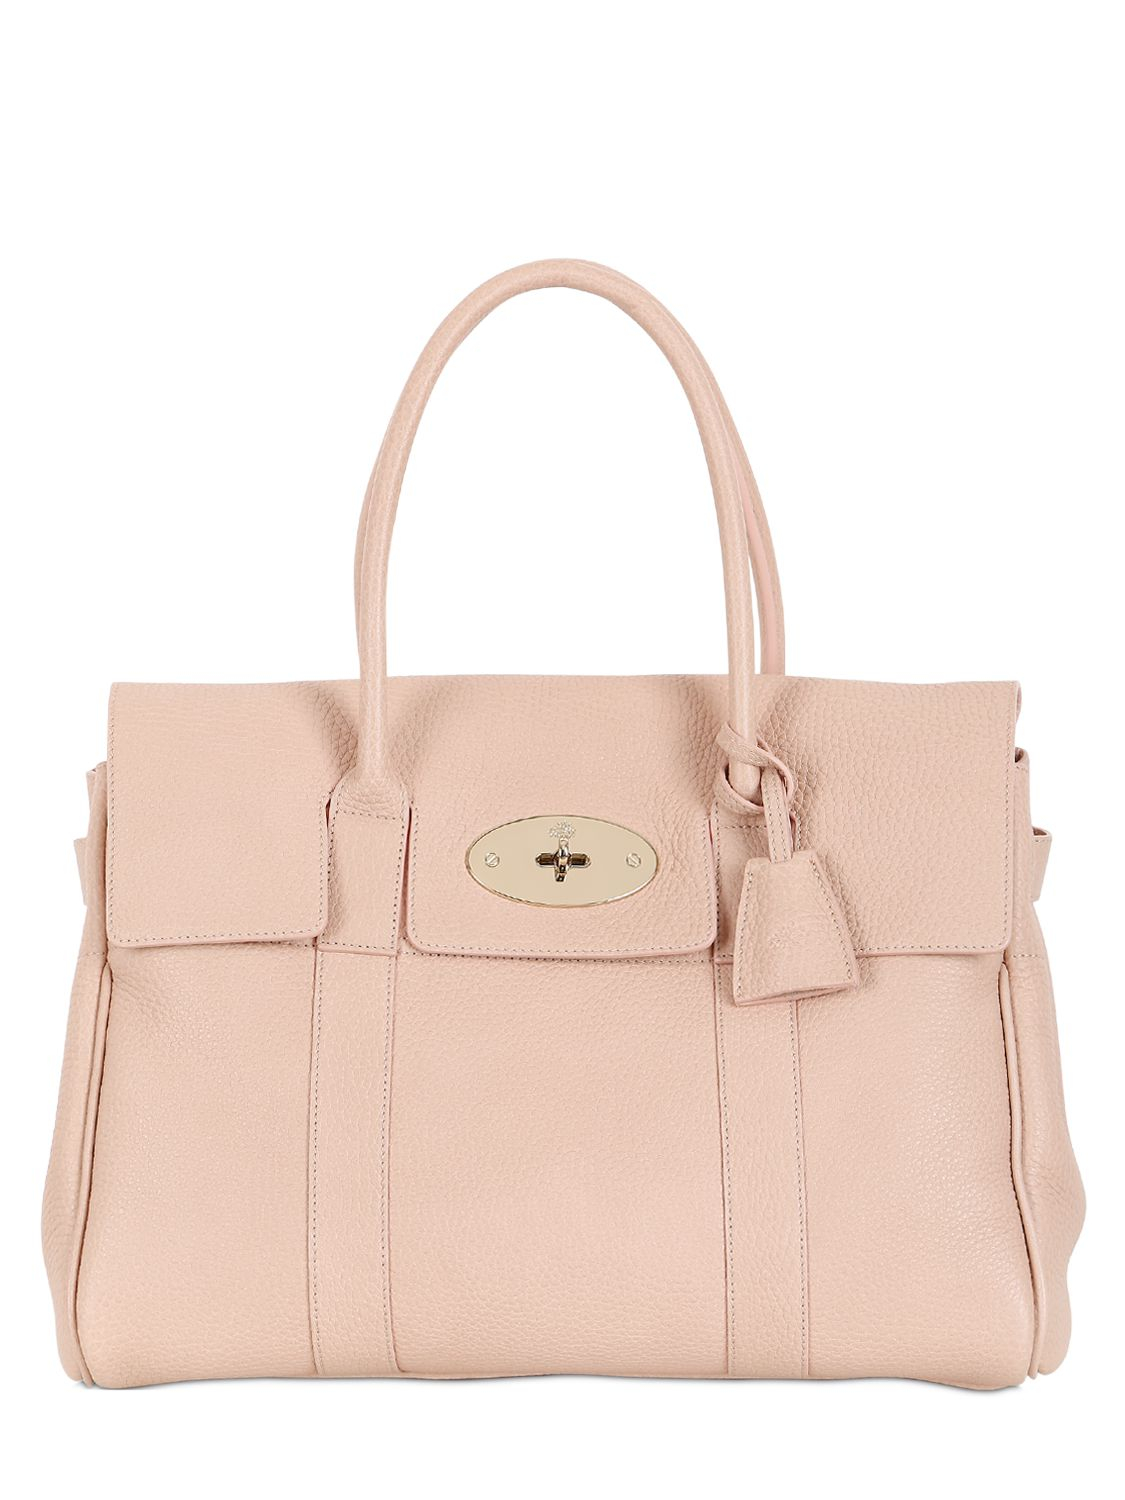 5c822d2d30 Mulberry Bayswater Soft Grained Leather Bag in Pink - Lyst